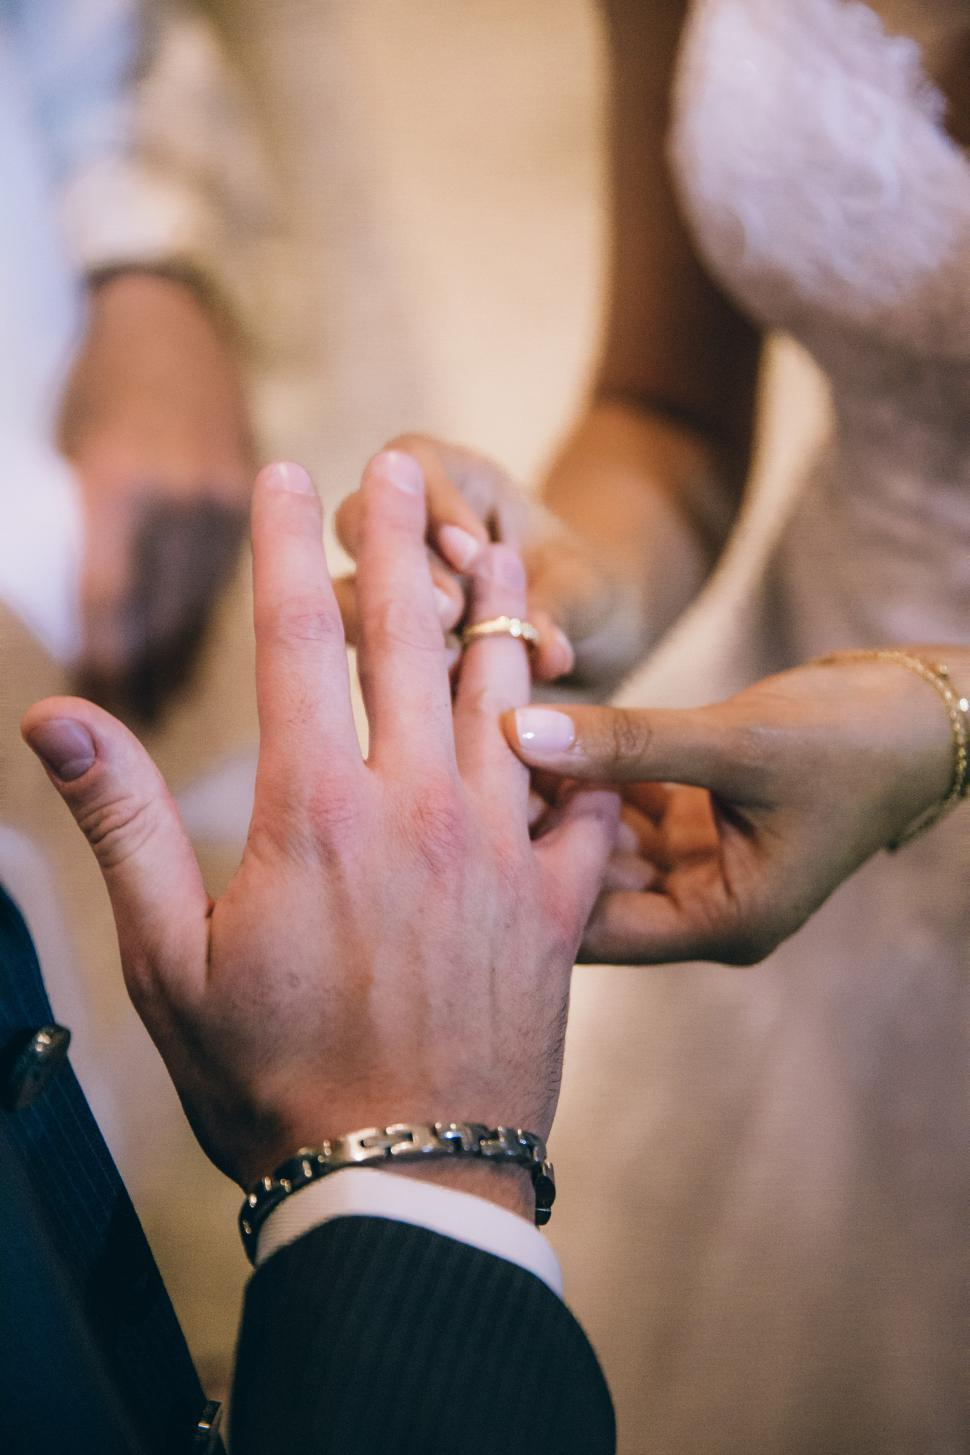 Download Free Stock Photo of Bride putting wedding ring on the groom s finger